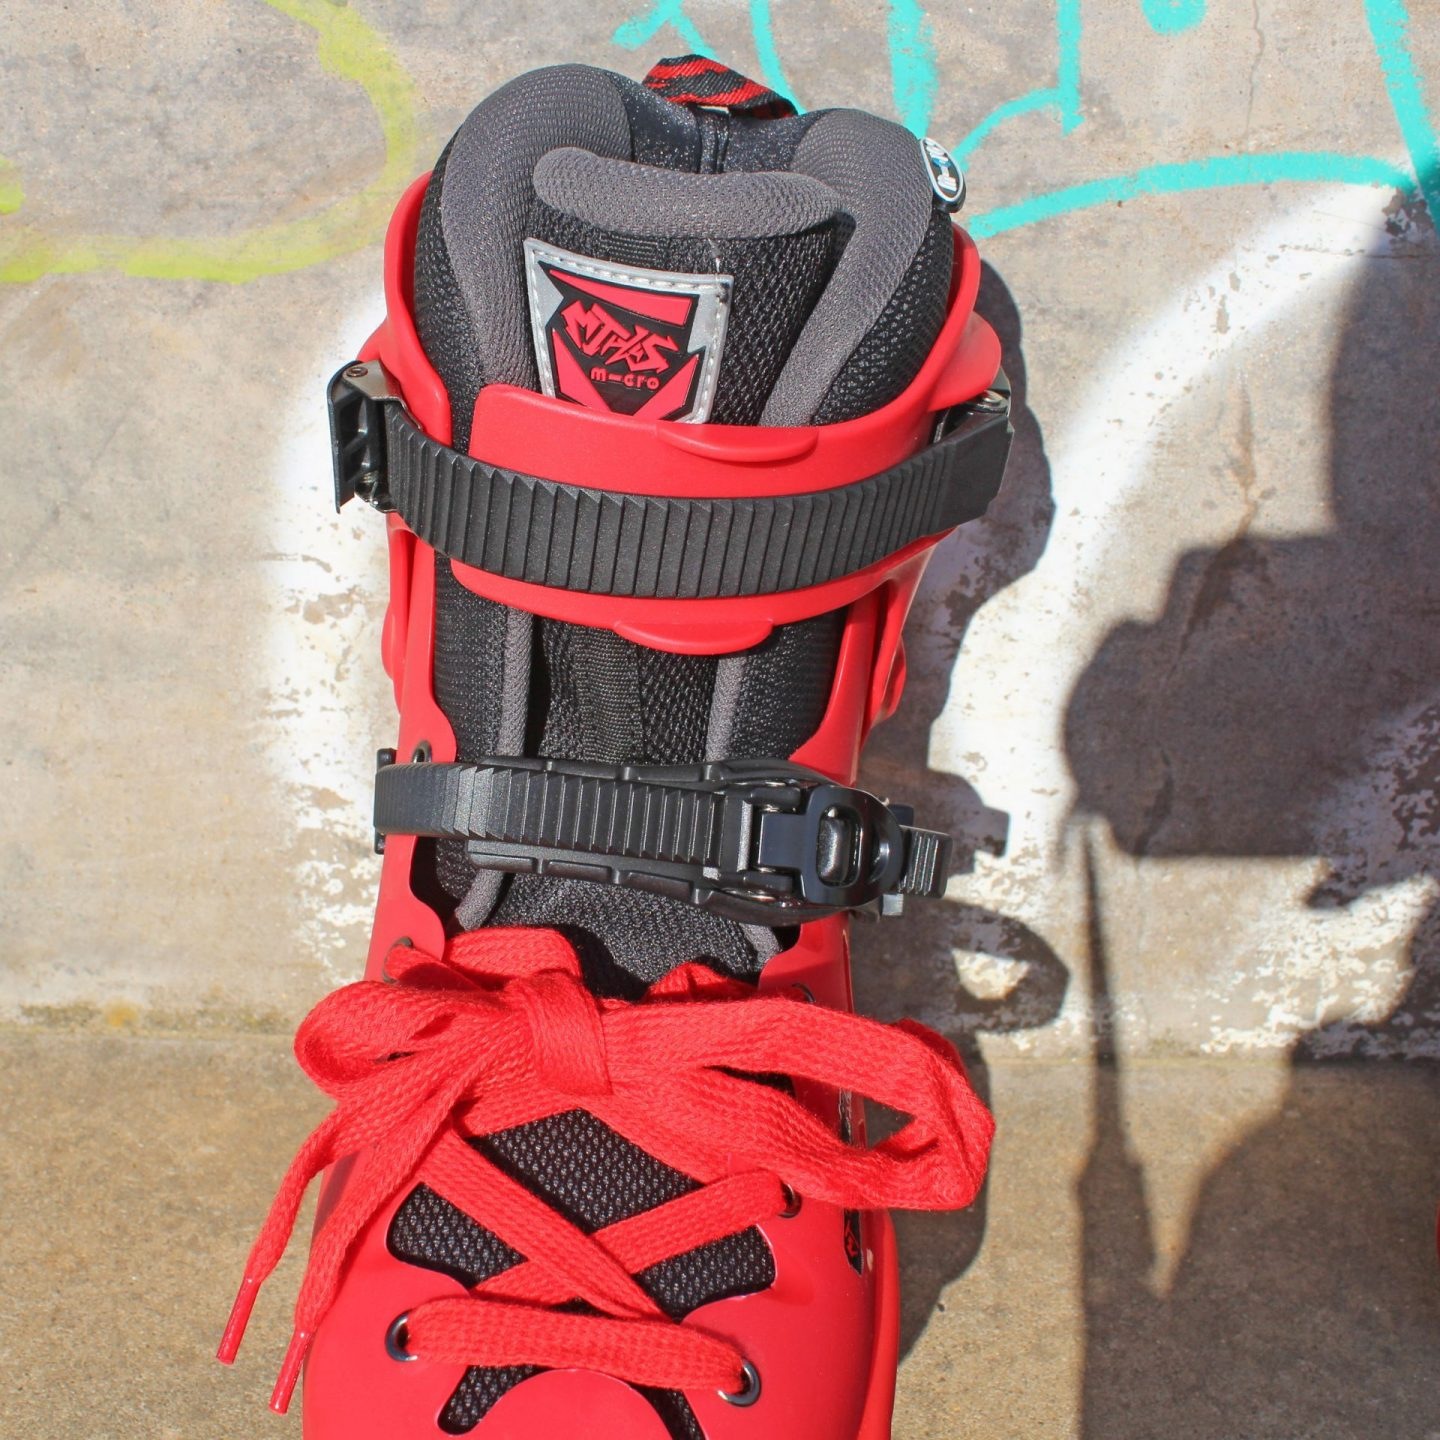 A closer look at Microskaters MT Plus boot.